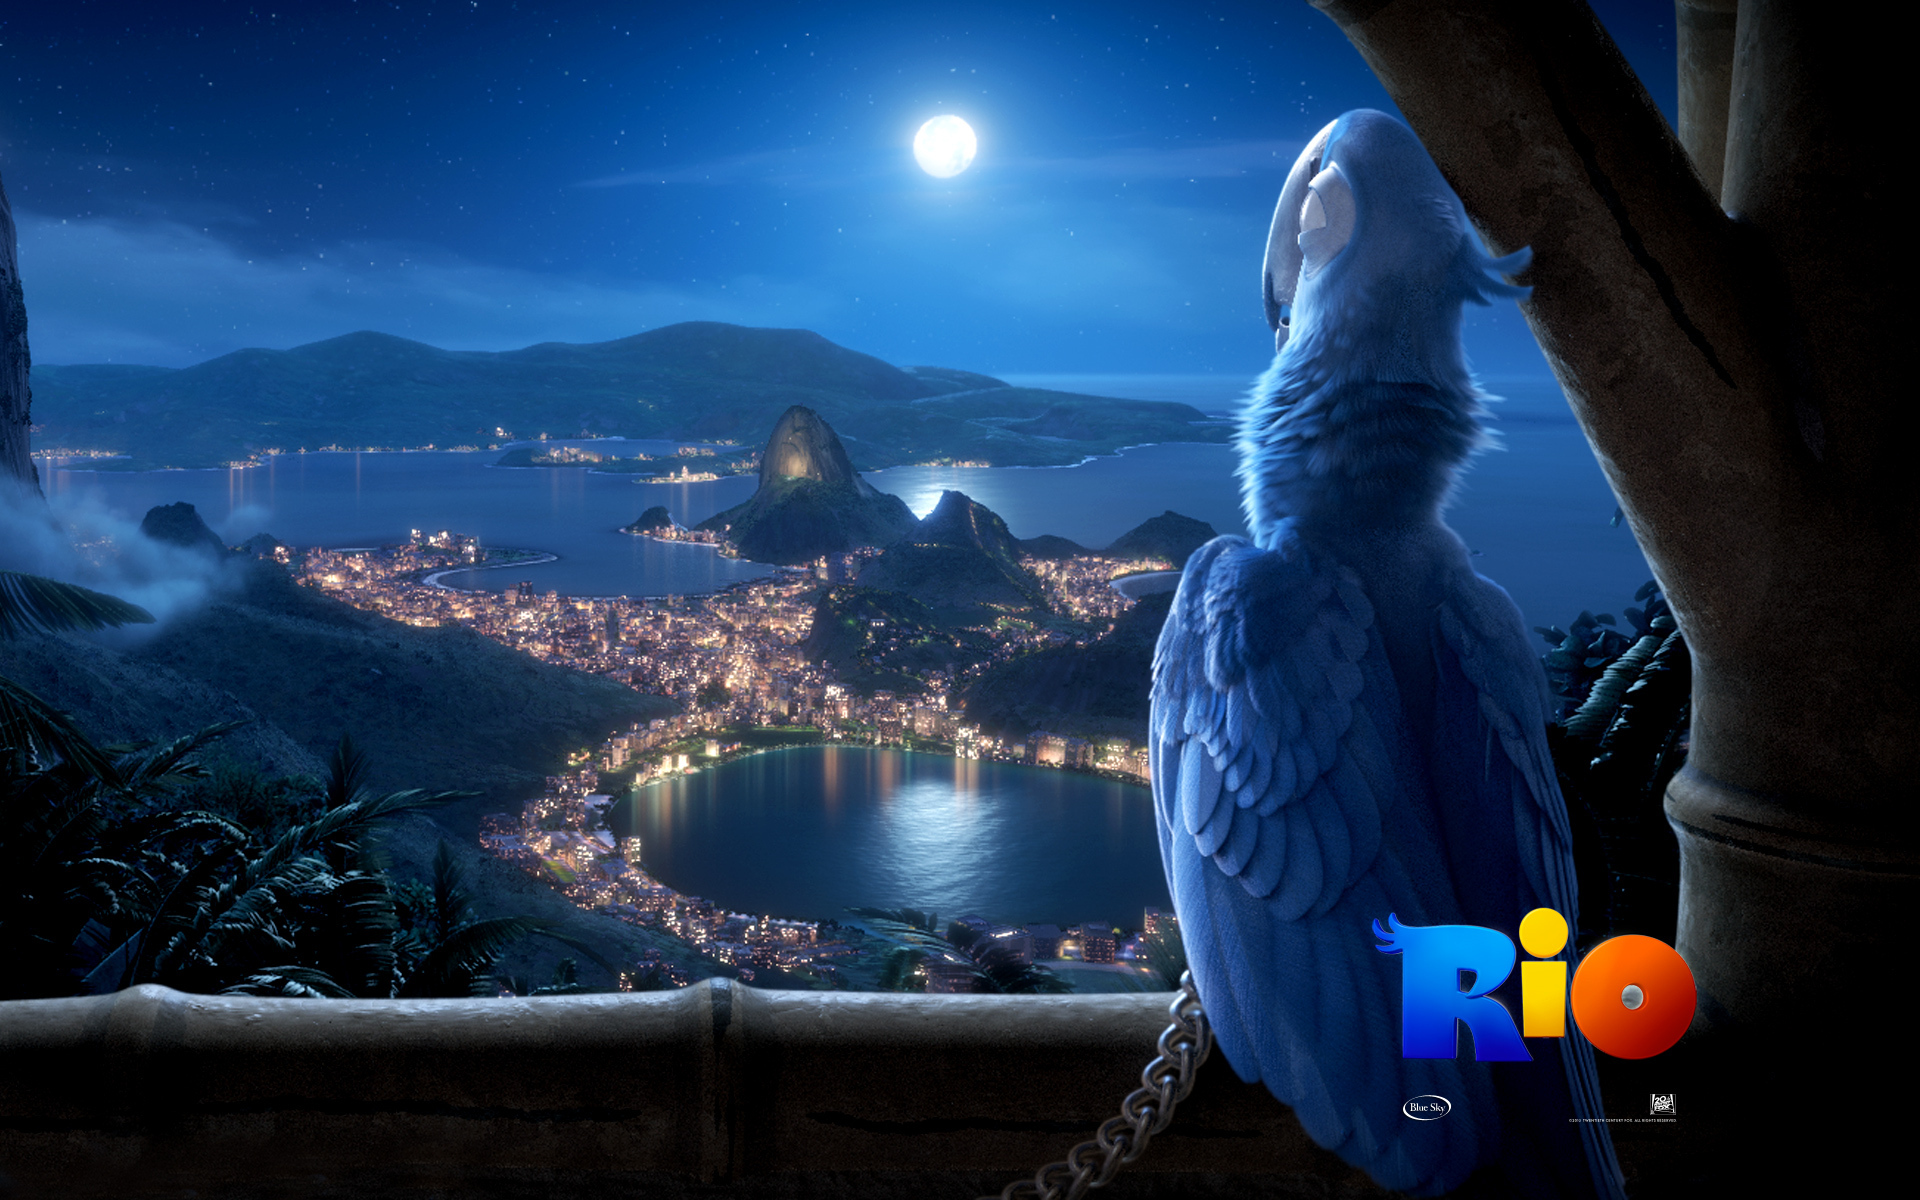 BLU (from The Computer-animated Film, Rio) Images Rio